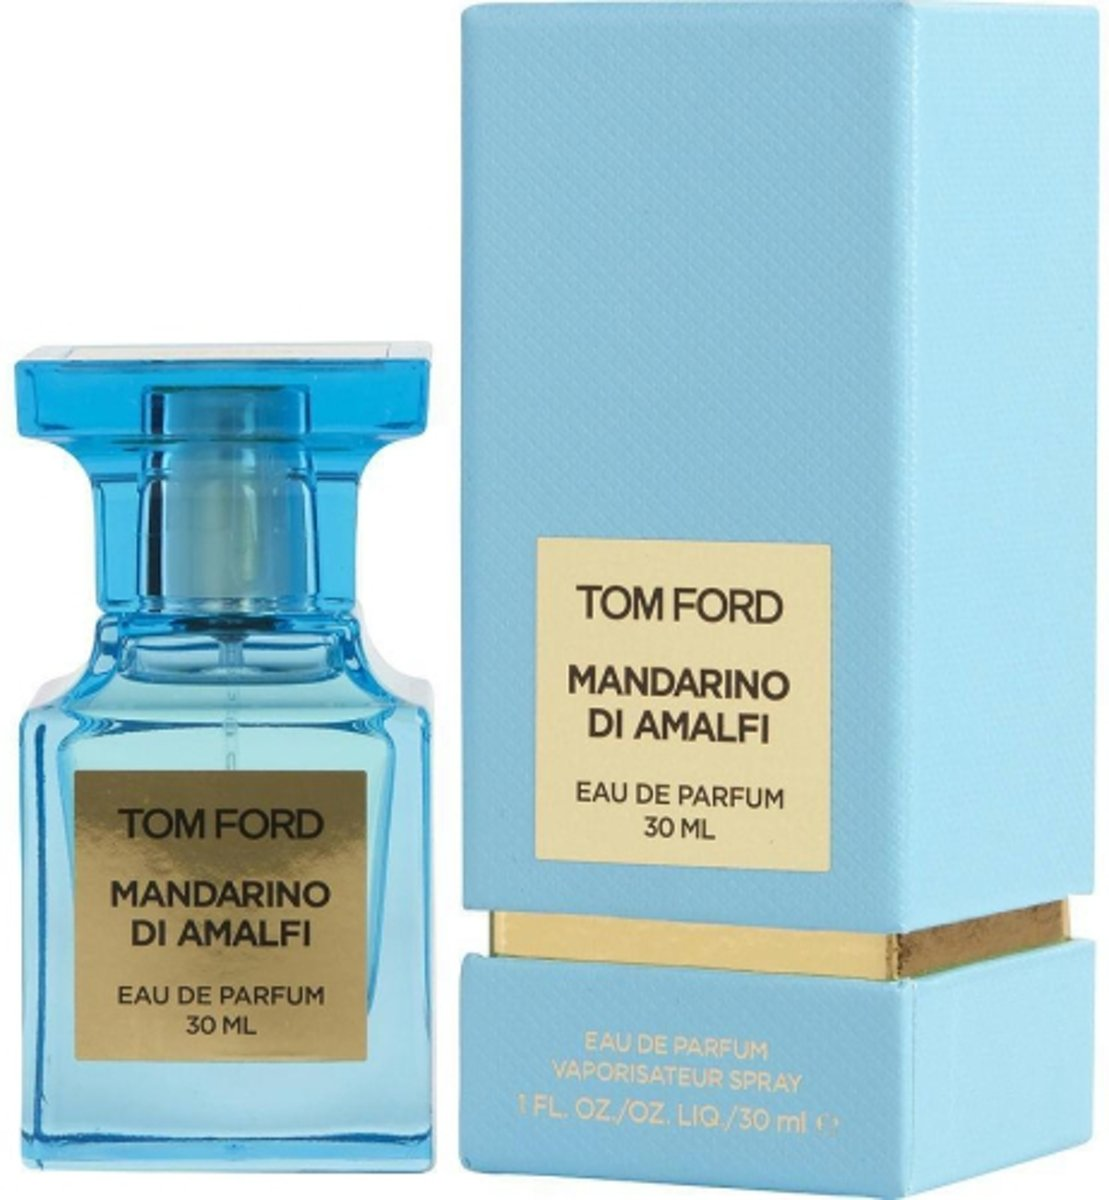 Tom Ford Mandarino Di Amalfi Edp Spray 30ml